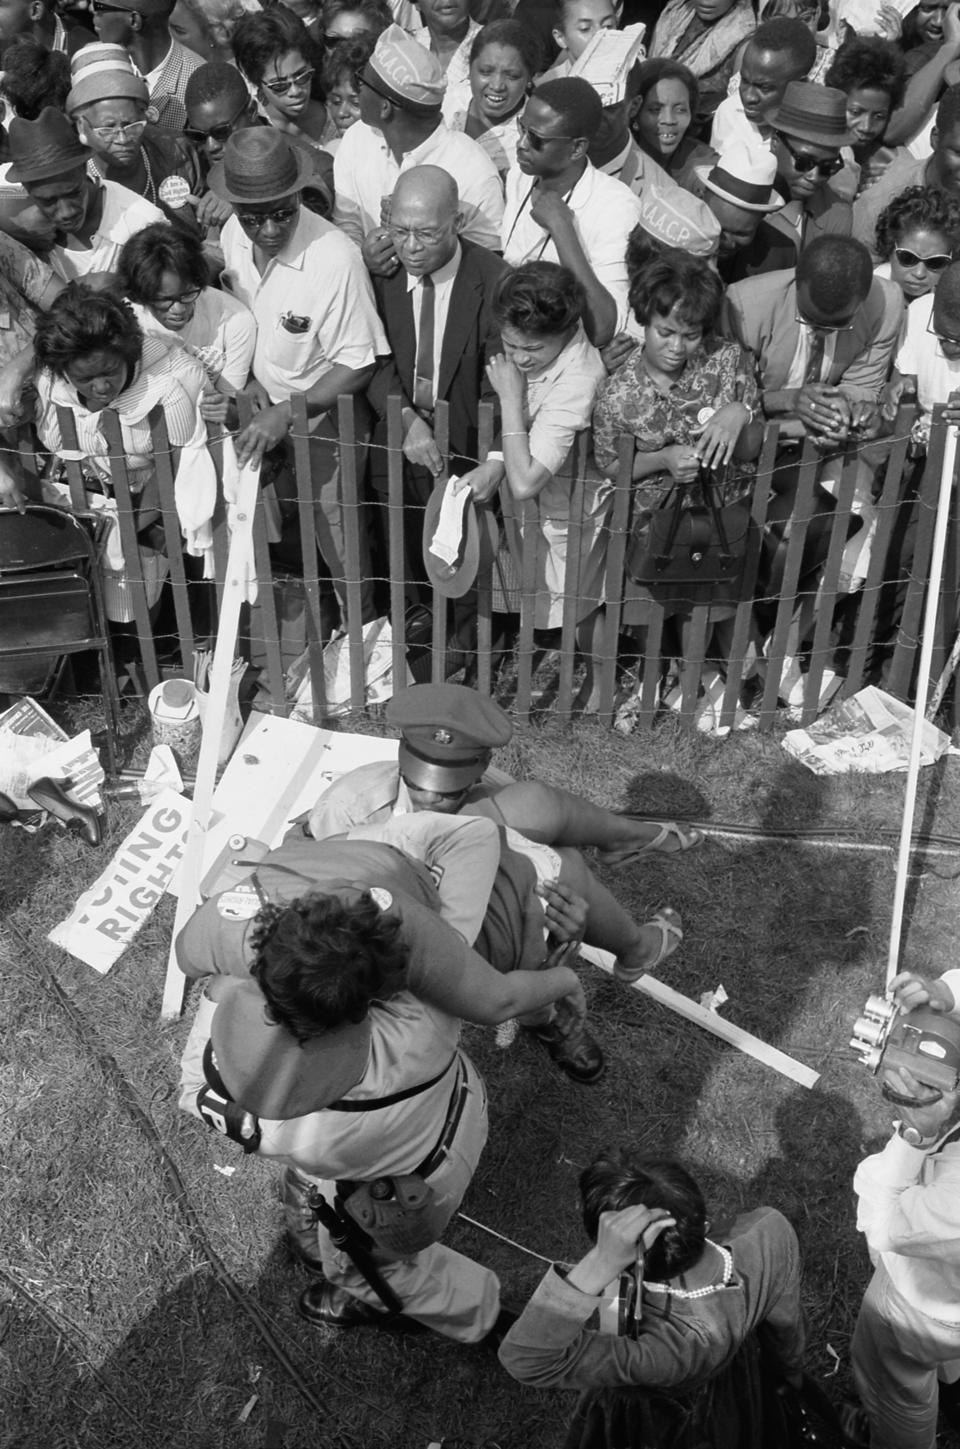 Crowd of African Americans behind a storm fence during March on Washington for Jobs and Freedom, Washington